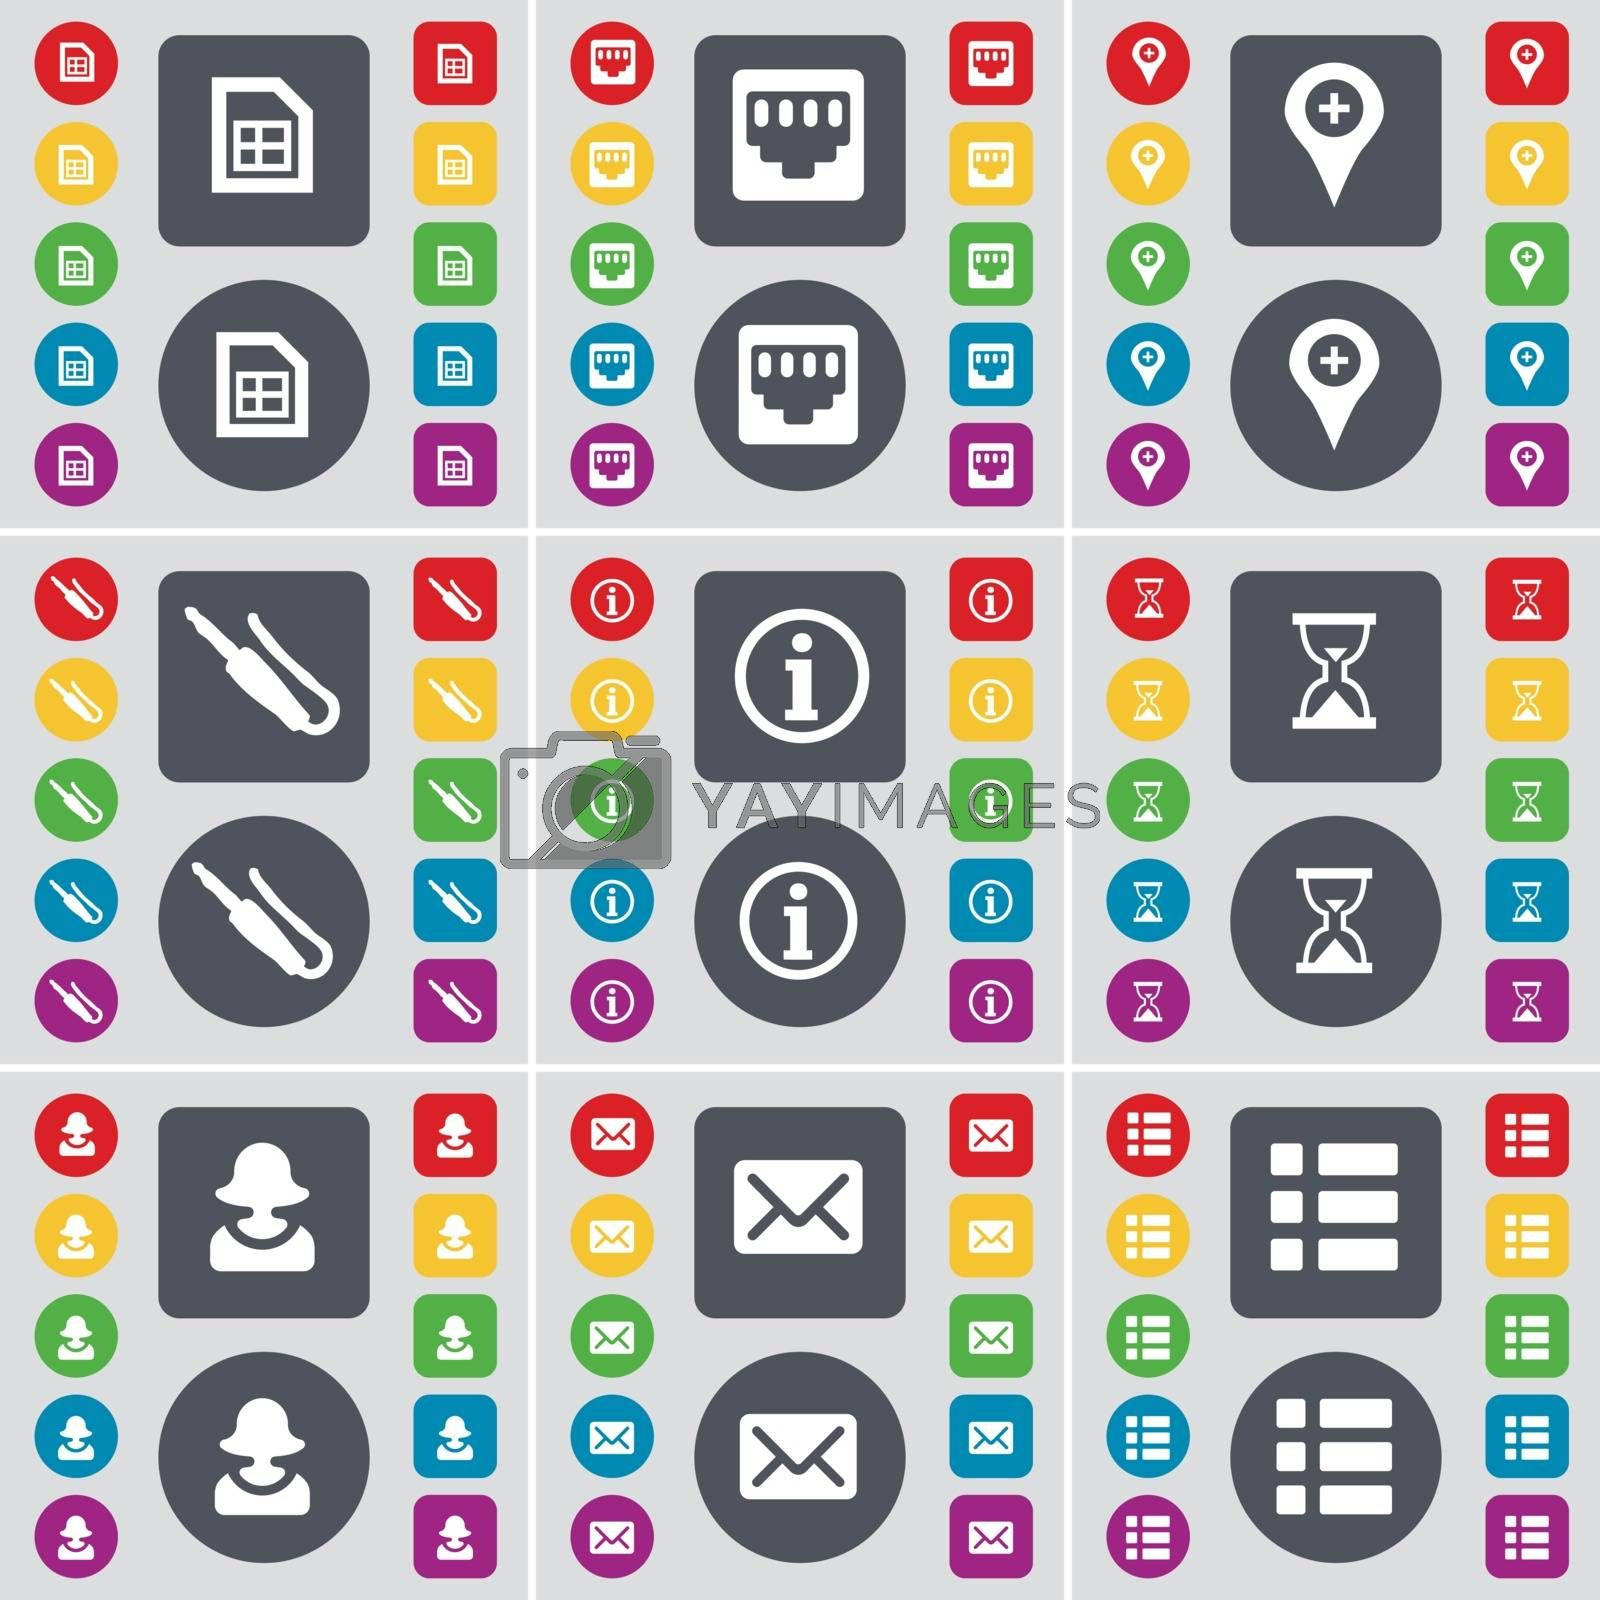 Royalty free image of File, LAN socket, Checkpoint, Microphone connector, Information, Hourglass, Avatar, Message, List icon symbol. A large set of flat, colored buttons for your design. Vector by serhii_lohvyniuk